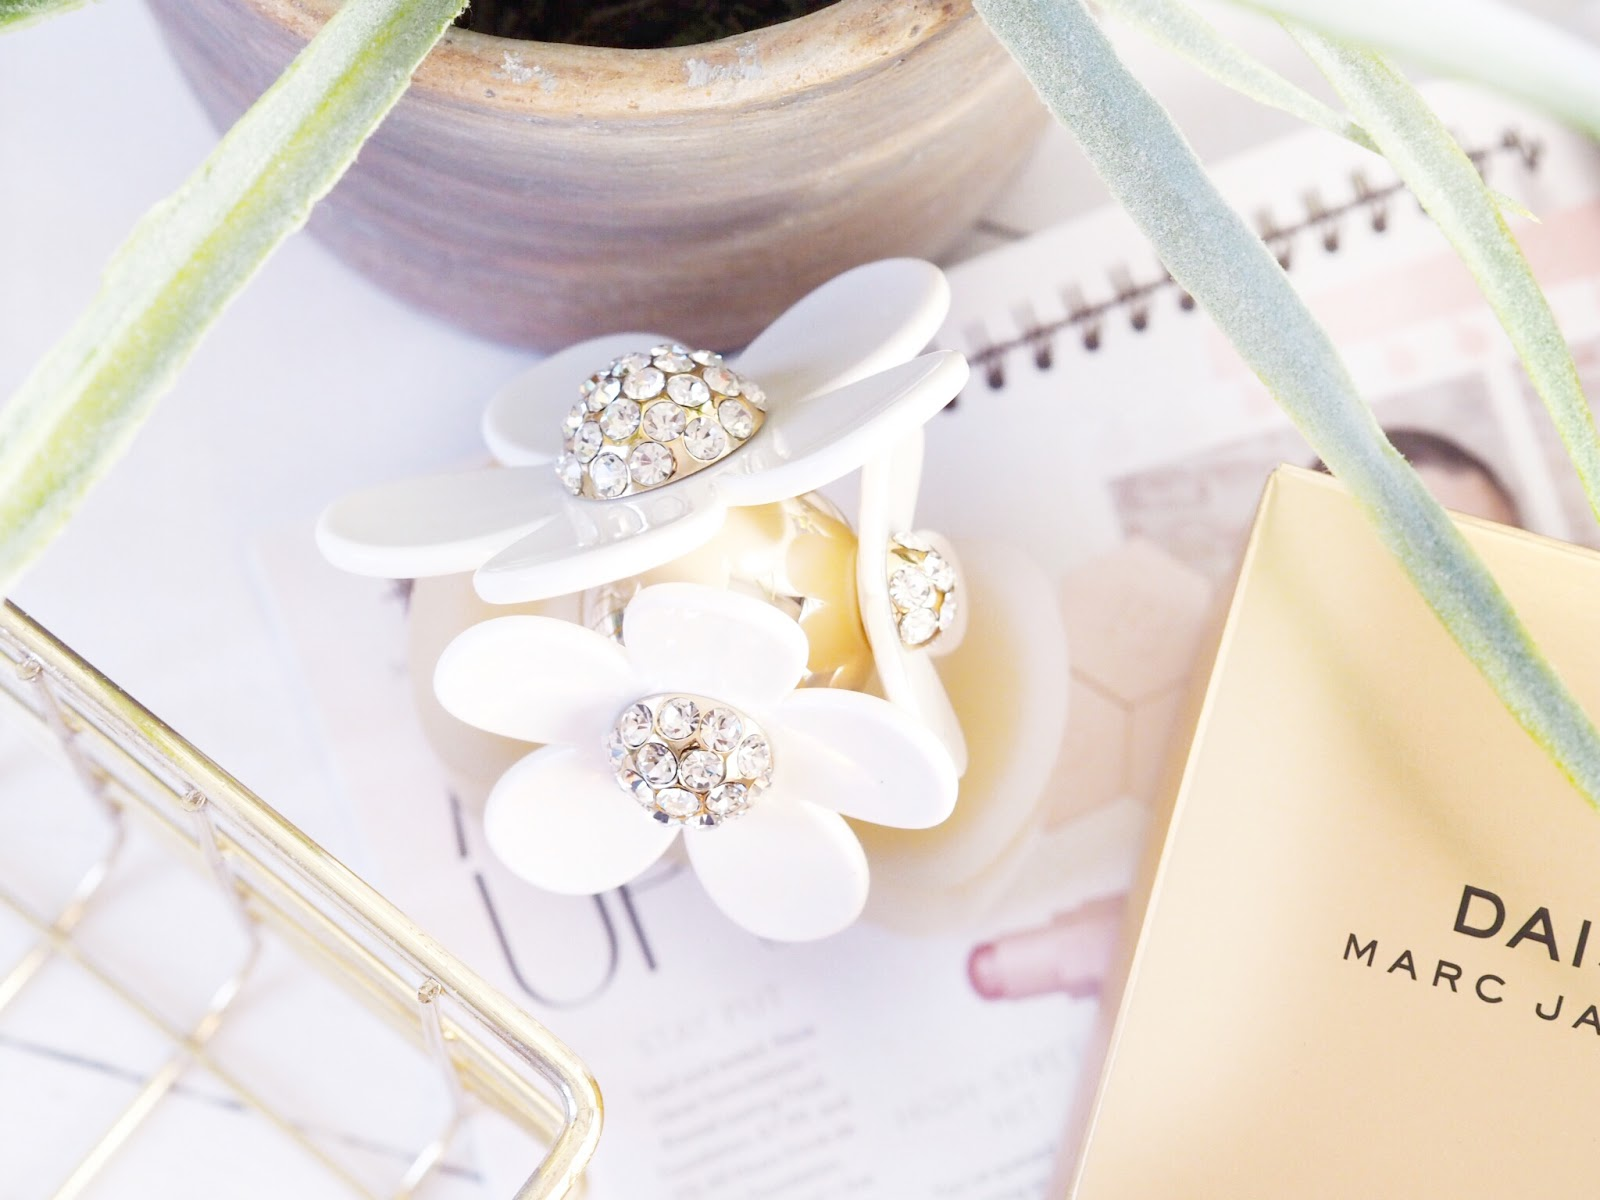 Reasons why every girl needs a bottle of marc jacobs daisy on her scent wise its also very versatile daisy is the sort of fragrance you can wear to a business meeting and also to a date its got that sort of fragrance izmirmasajfo Image collections